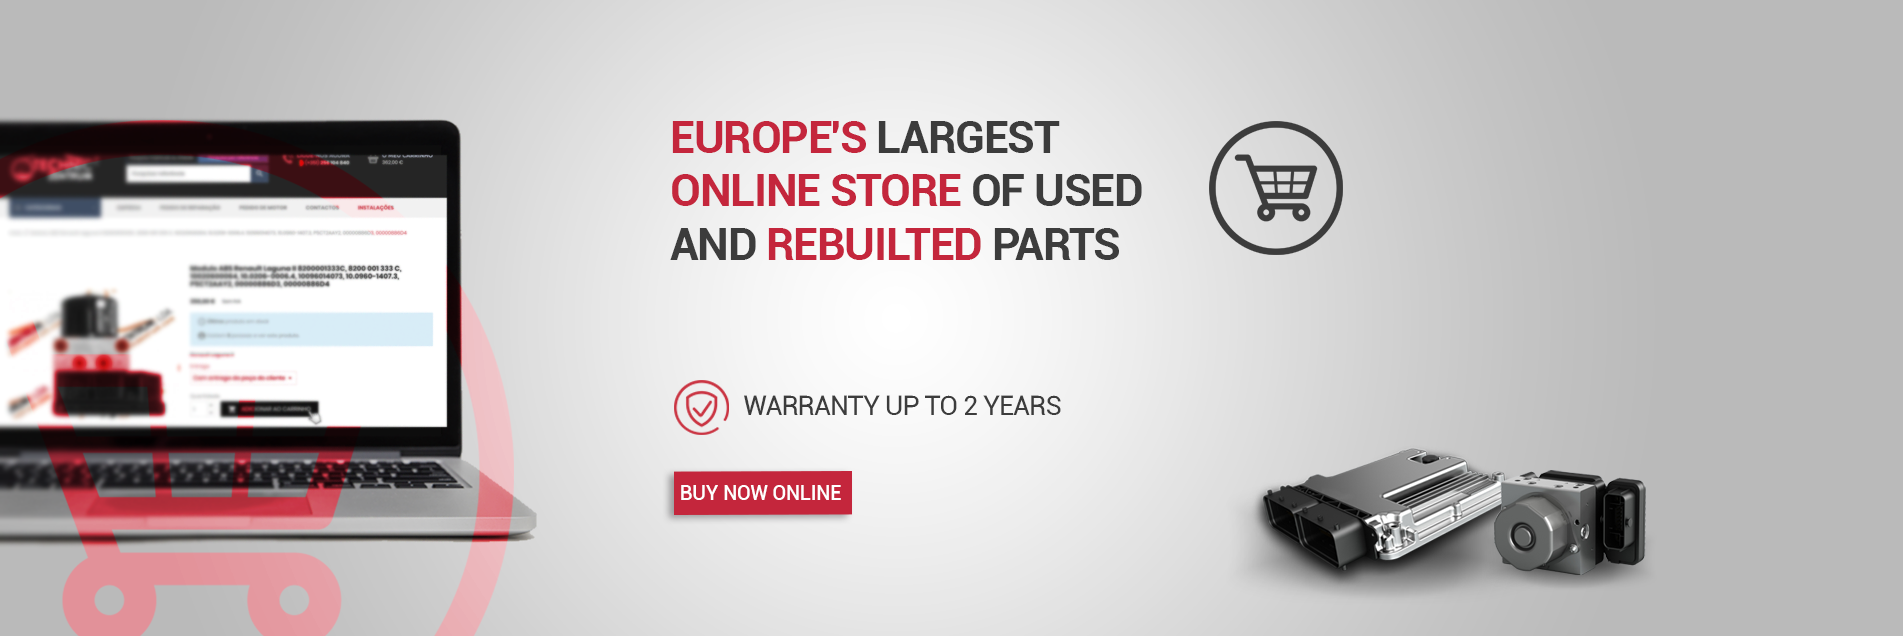 Largest online auto parts store in europe. Sale of abs modules at techniczentrum.